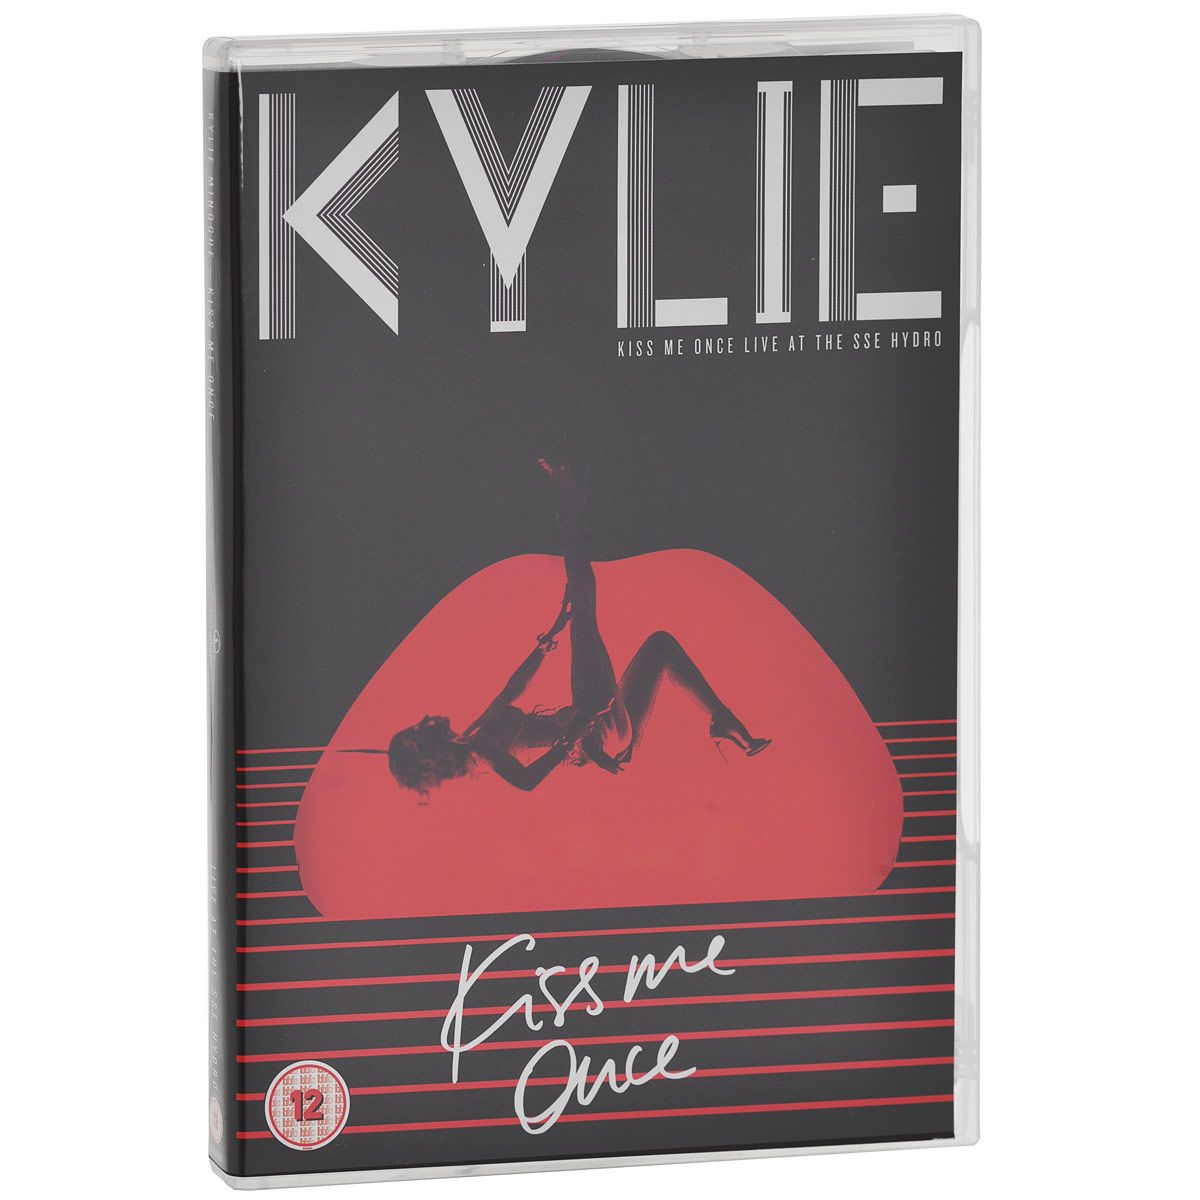 Кайли Миноуг Kylie Minogue. Kiss Me Once Live At The SSE Hydro (2 CD + DVD)